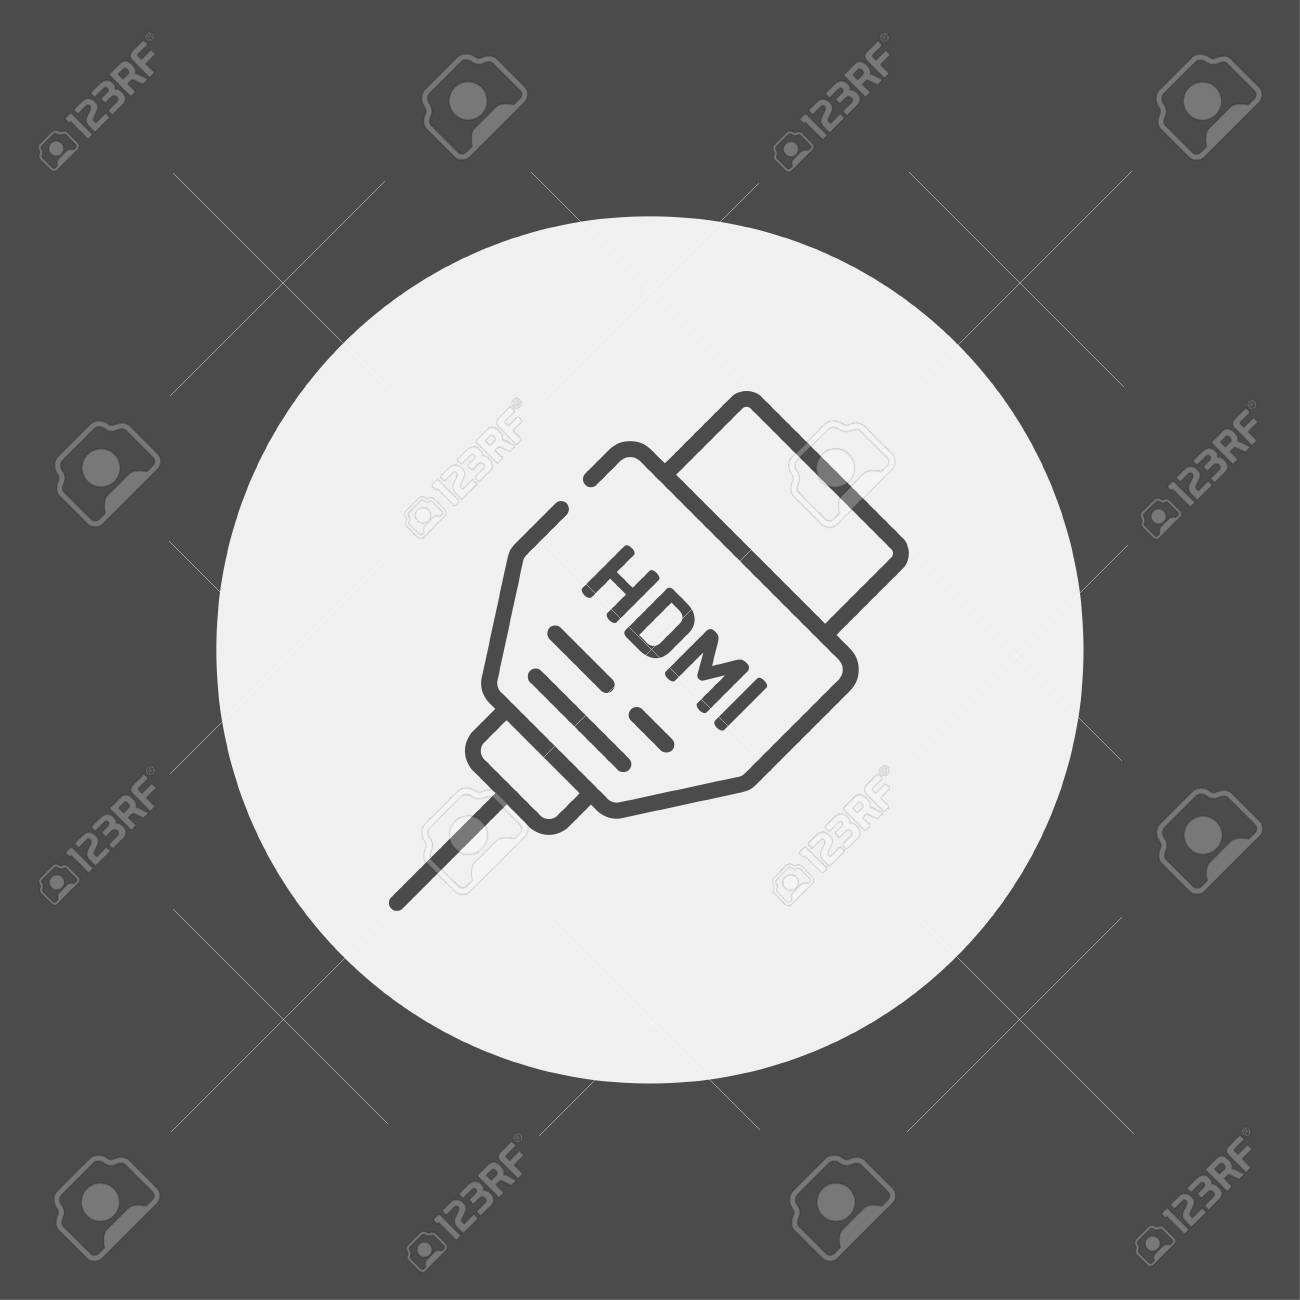 Hdmi Cable Line Icon Outline Vector Sign Linear Style Pictogram